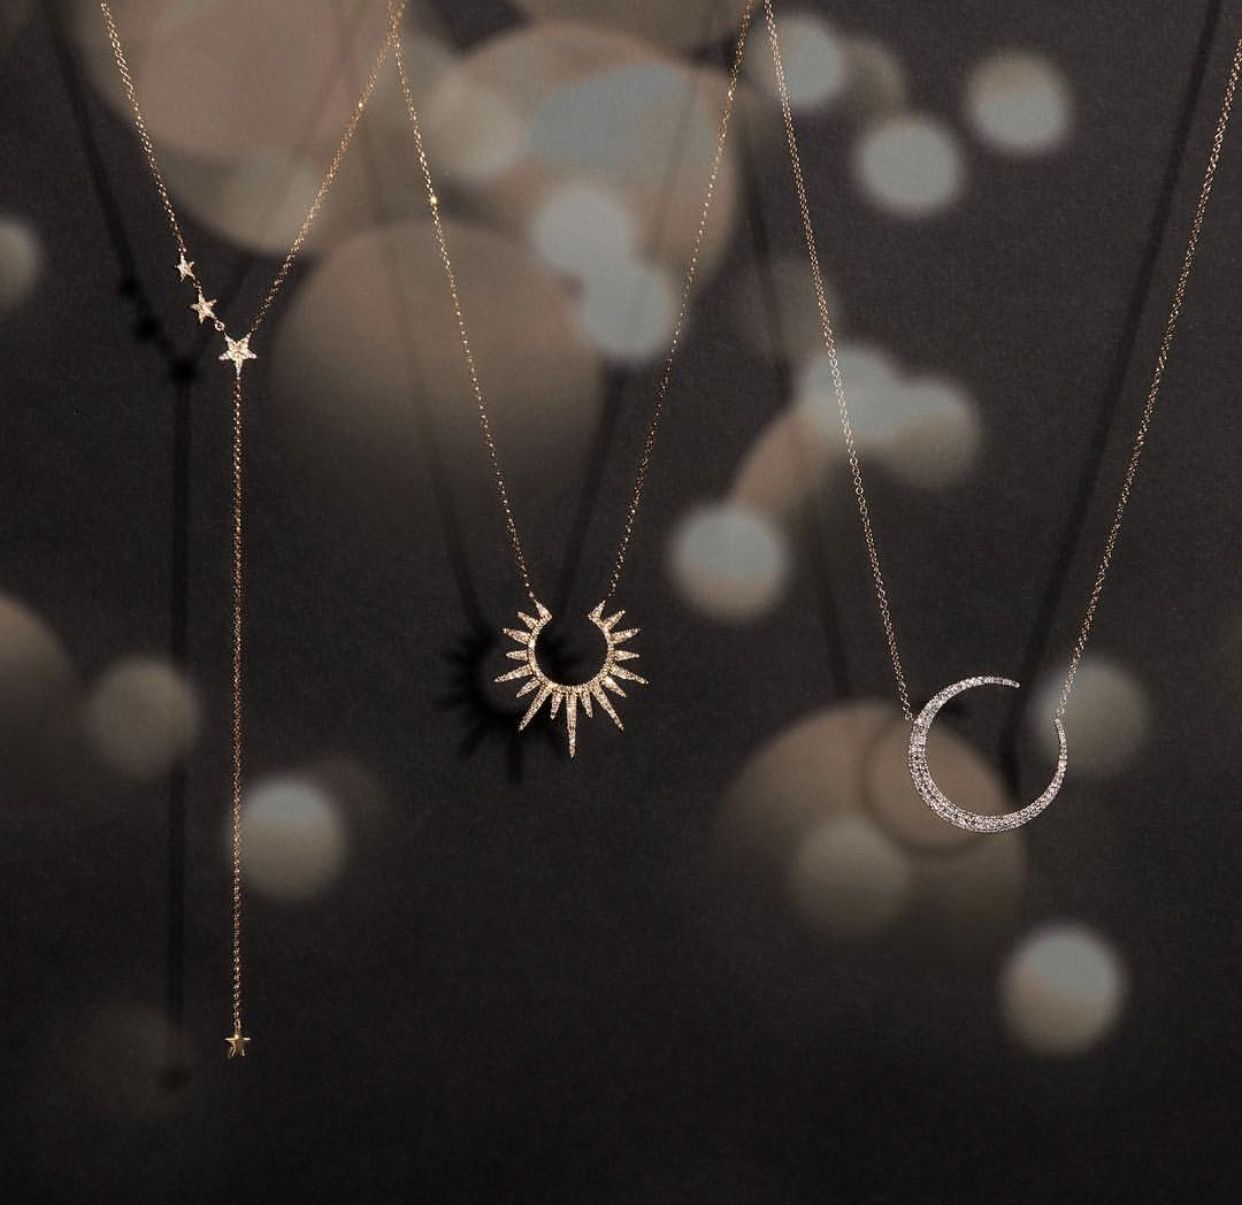 c7257265fe Celestial jewelry is a trend carrying over from 2018 into 2019, and ...